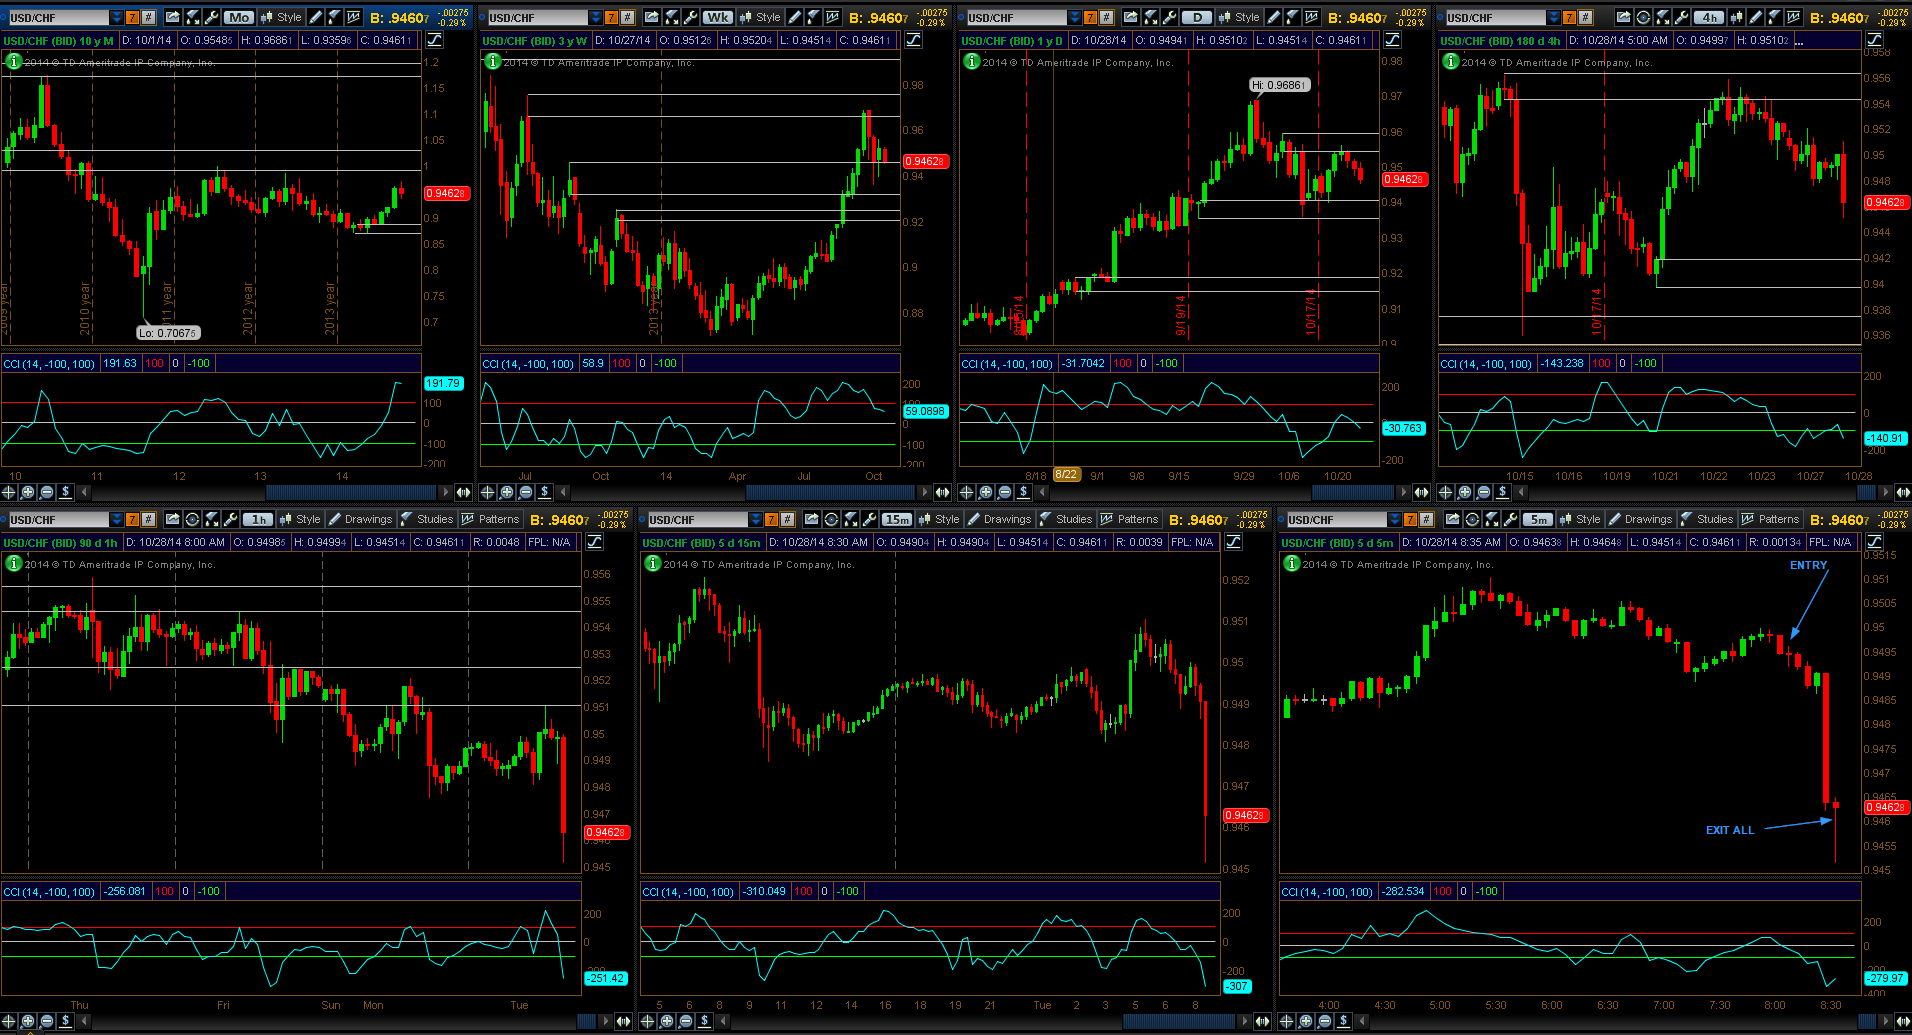 20141028_USDCHF_HPAP_2